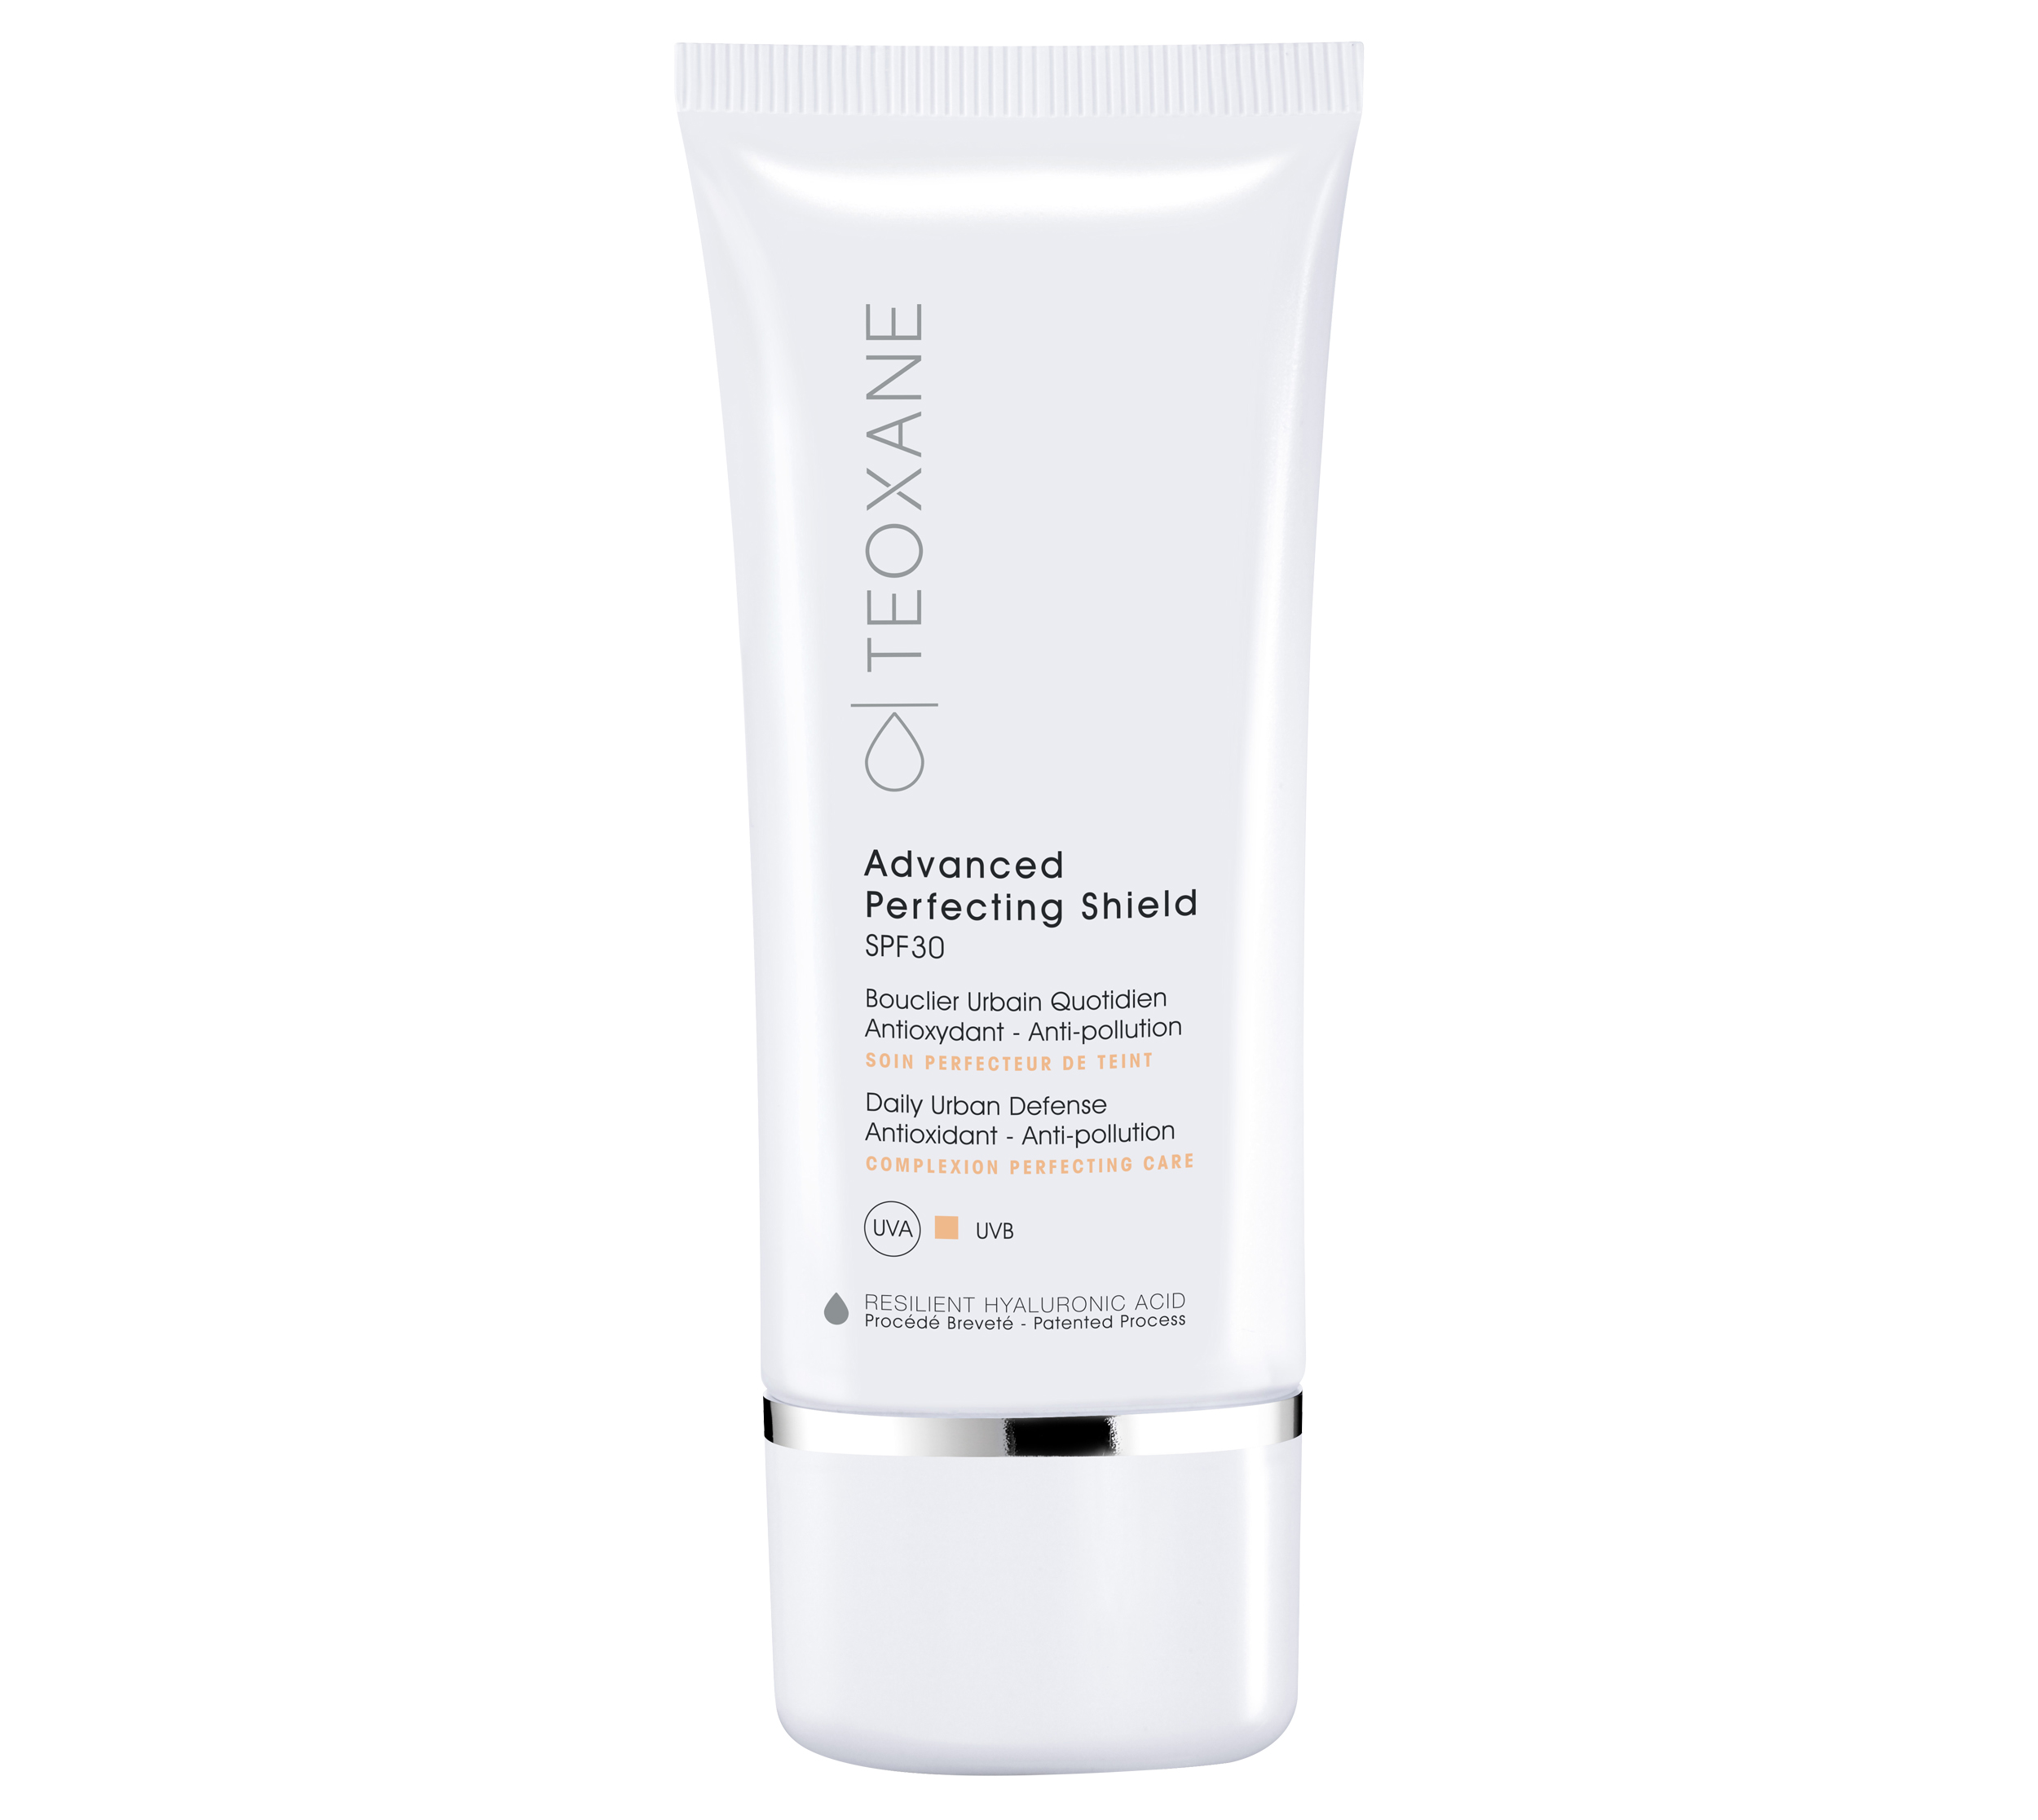 Teoxane Advanced Perfecting Shield SPF 30, £48/AED215.46, Dermacare Direct